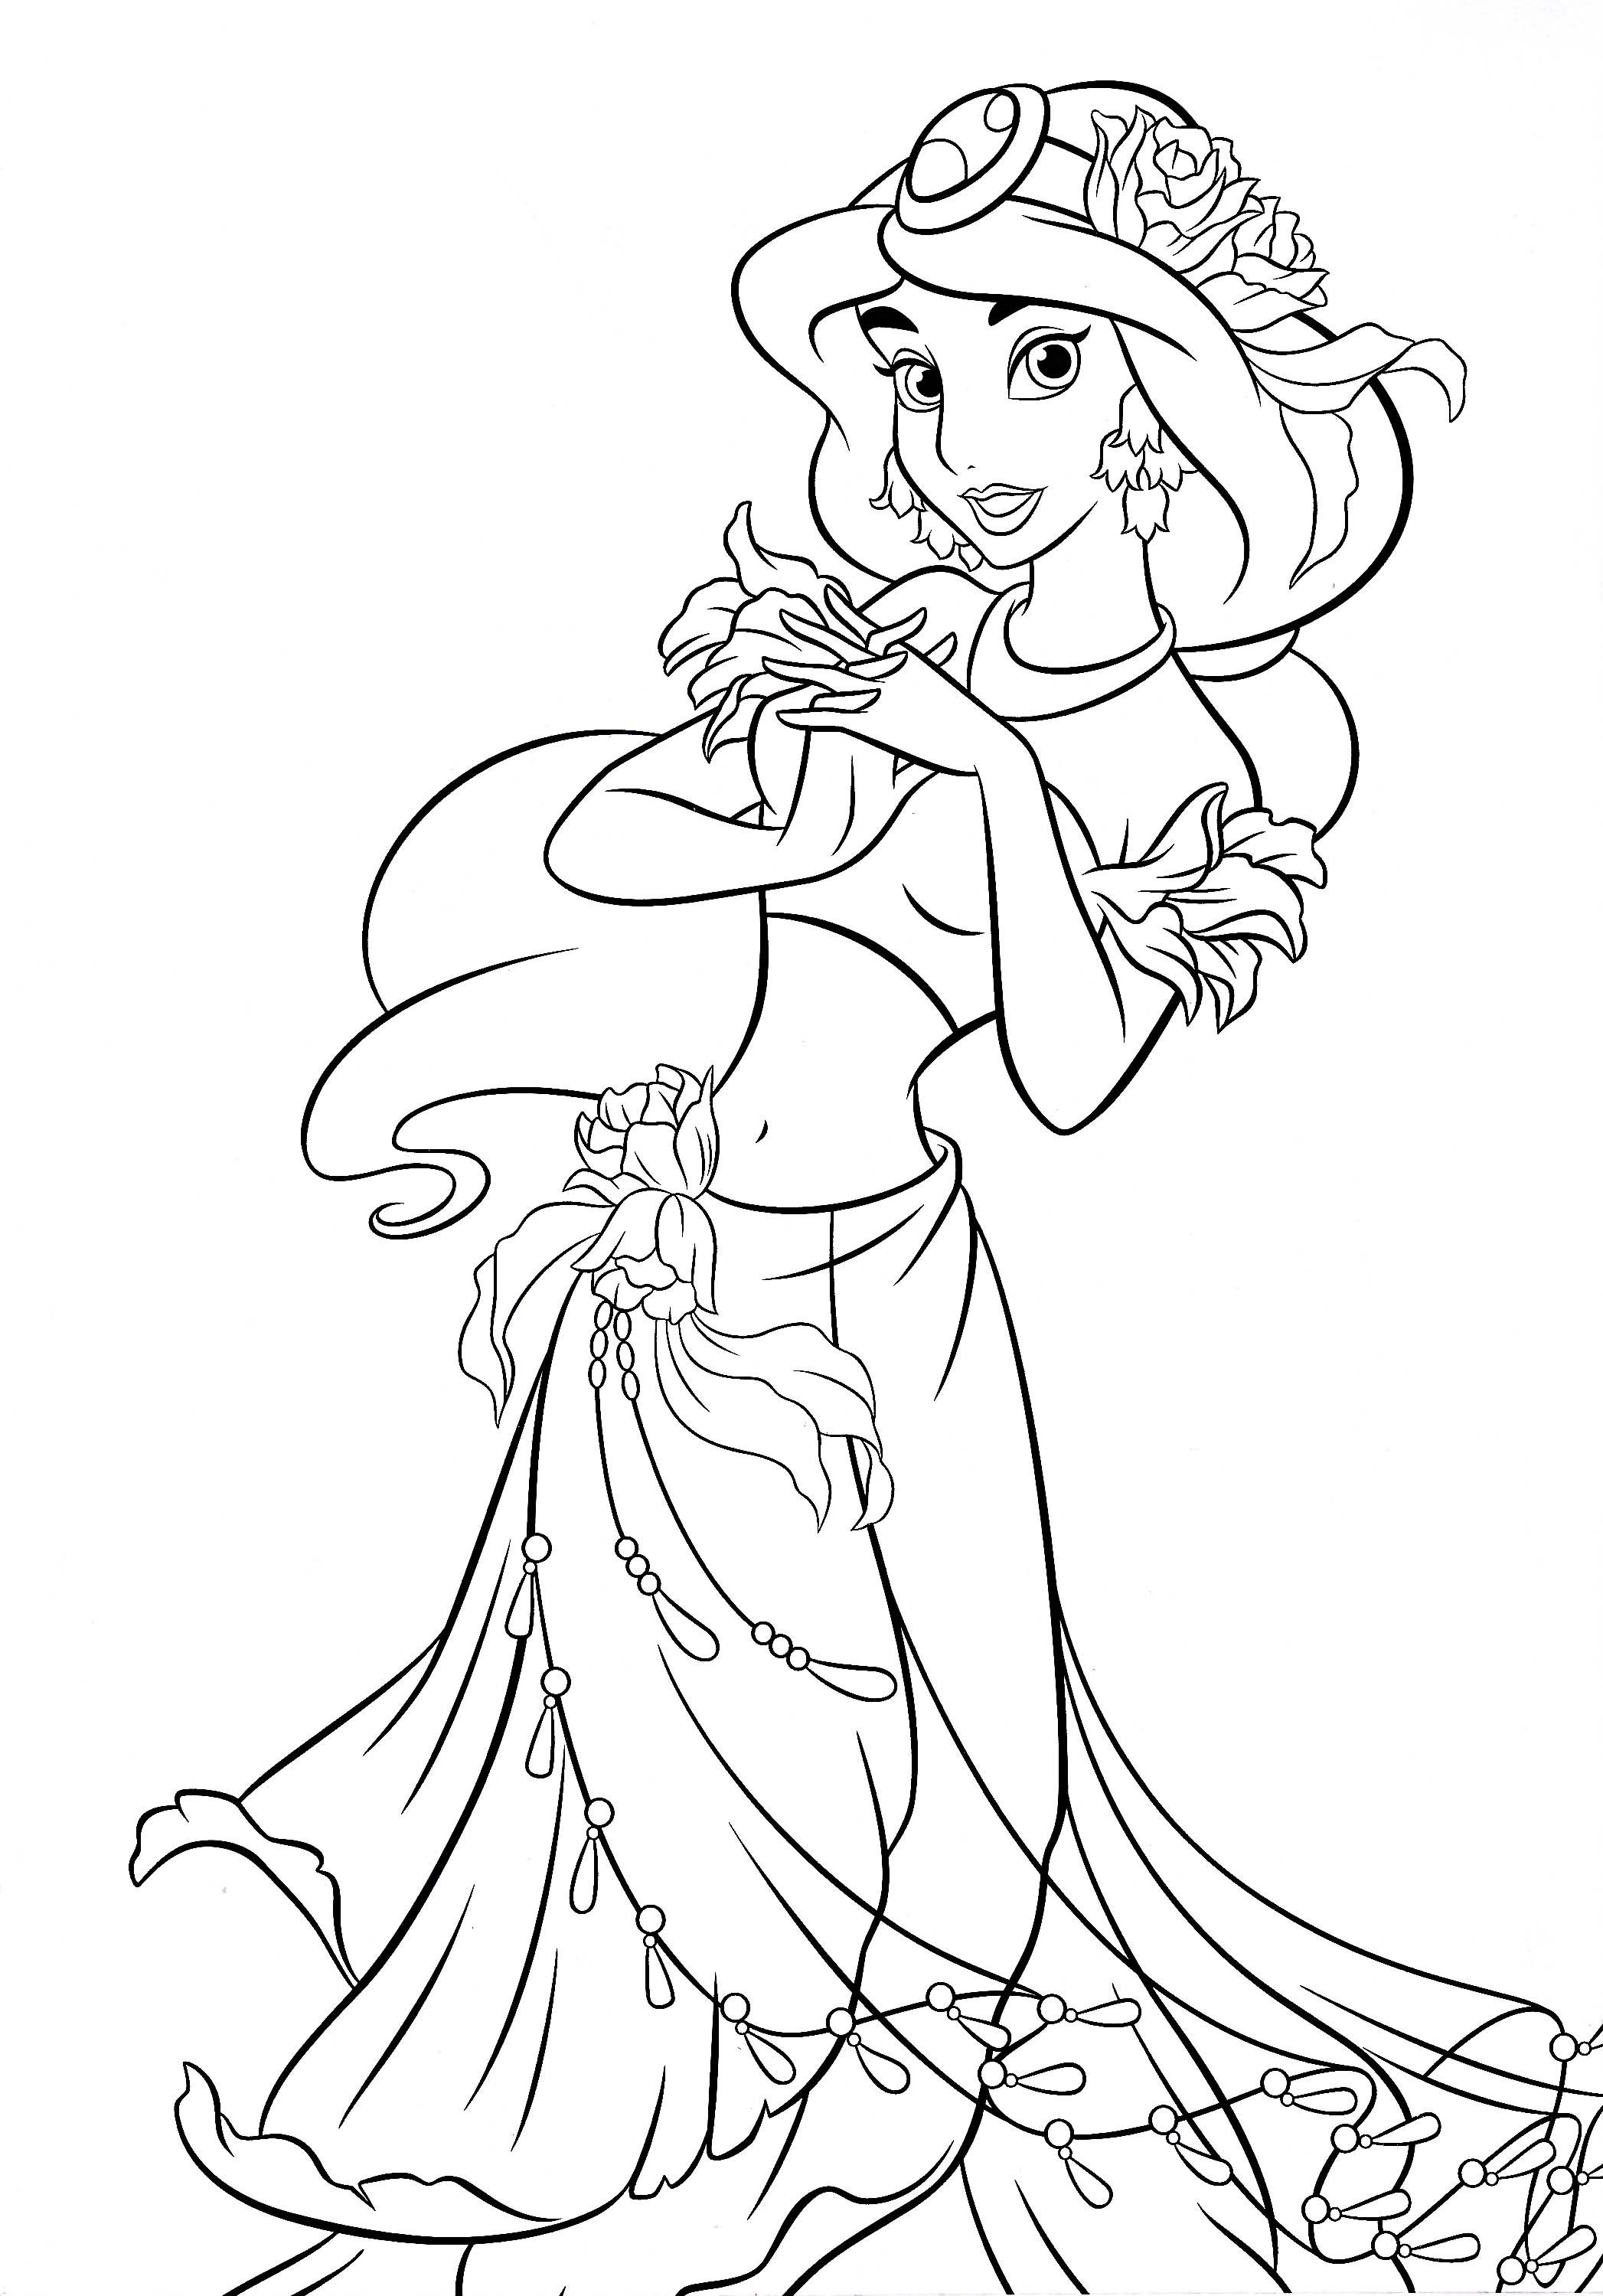 Aurora Jasmine Coloring Pages Free Coloring Pages Download | Xsibe ...